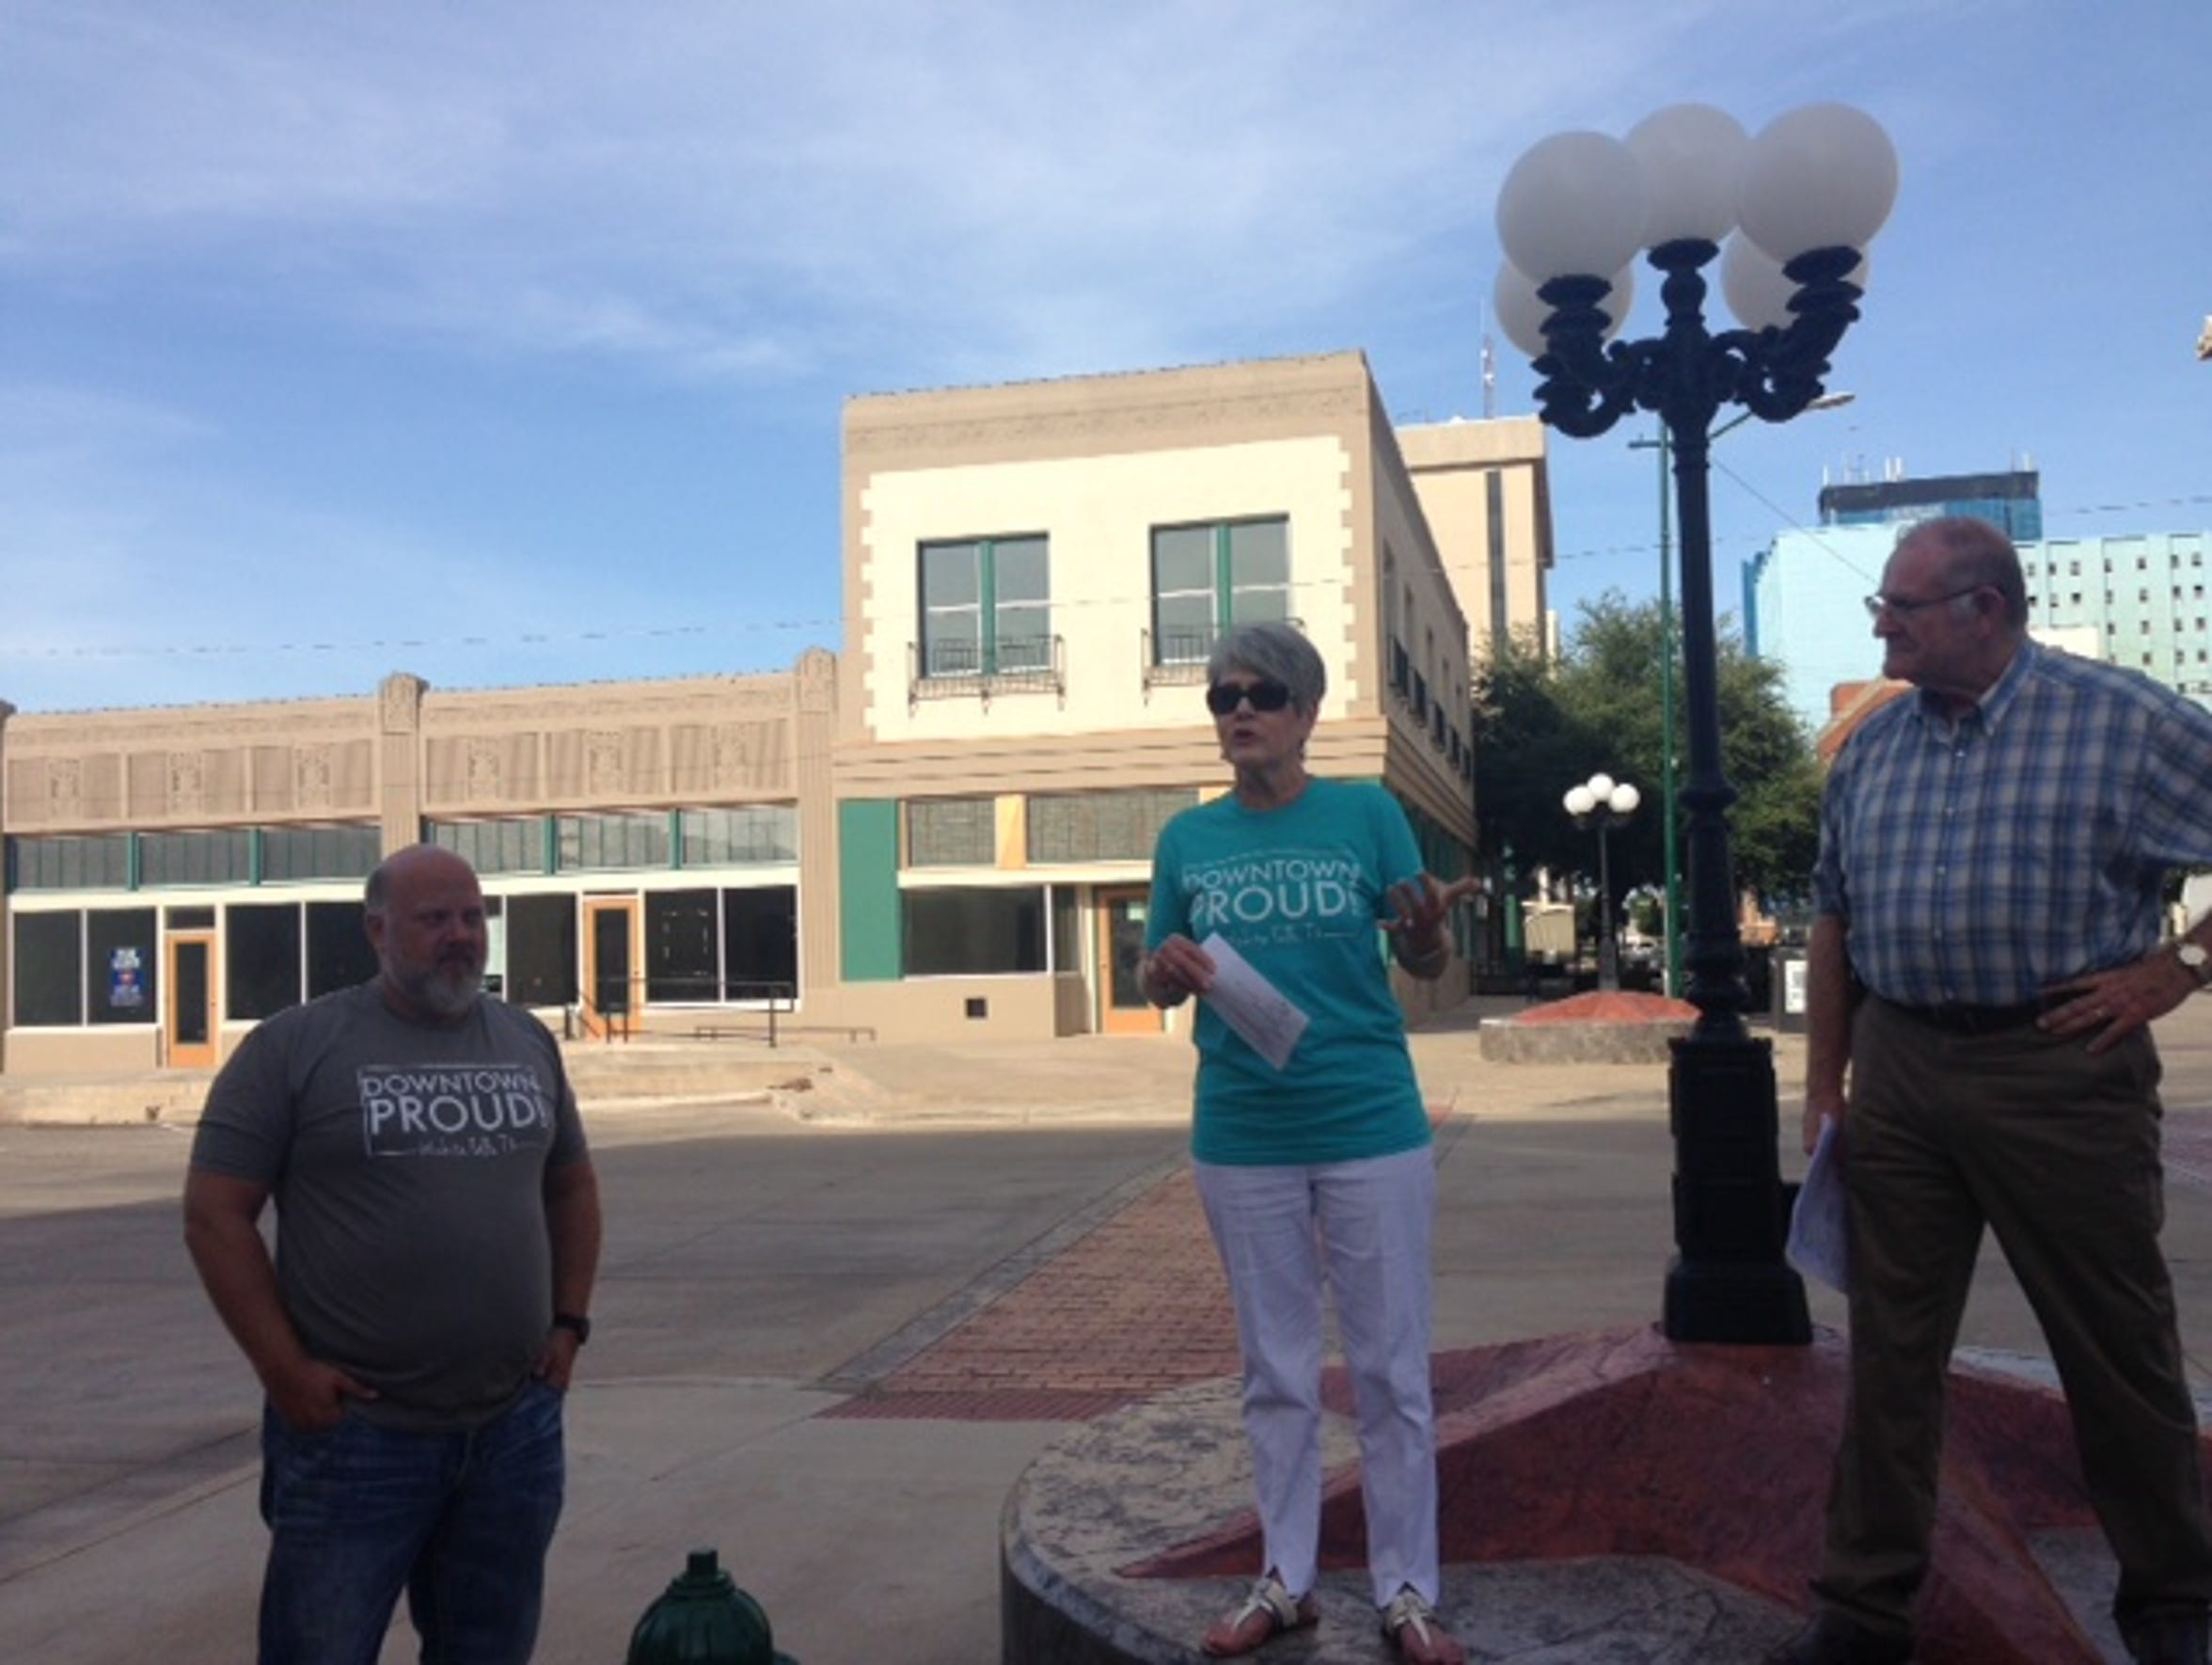 Cynthia Laney, center, speaks to members of the Downtown